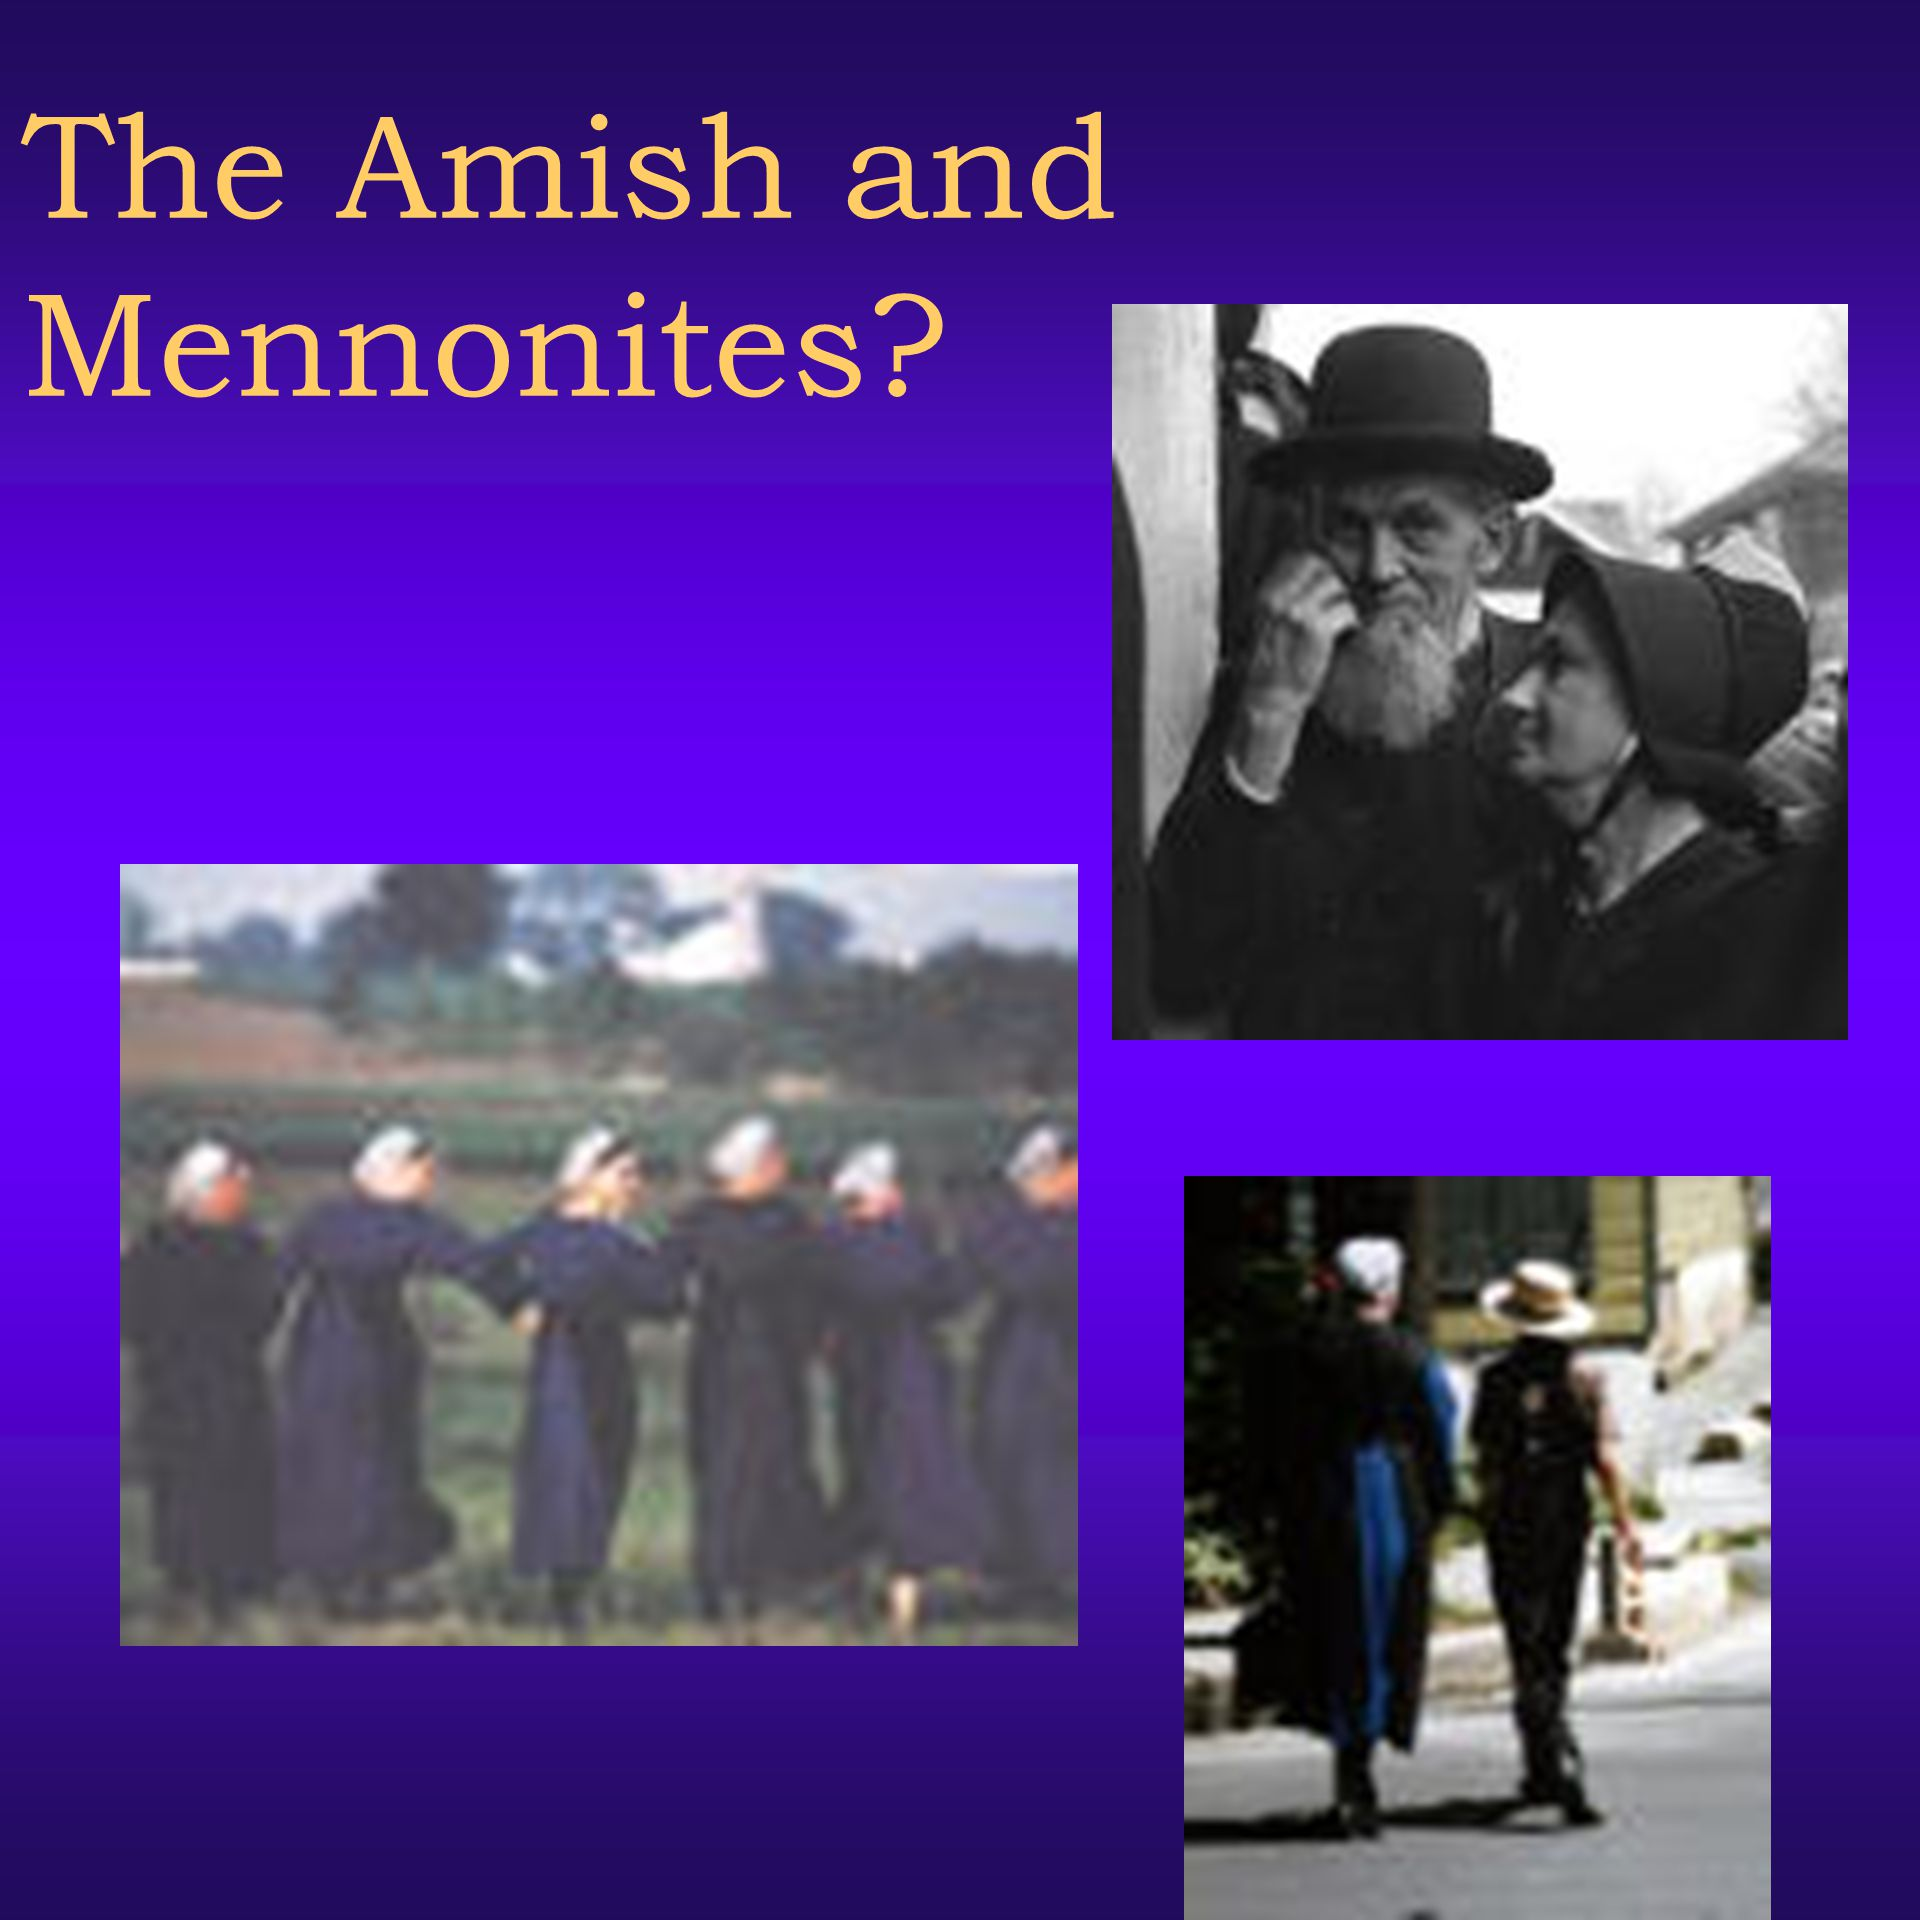 The Amish and Mennonites